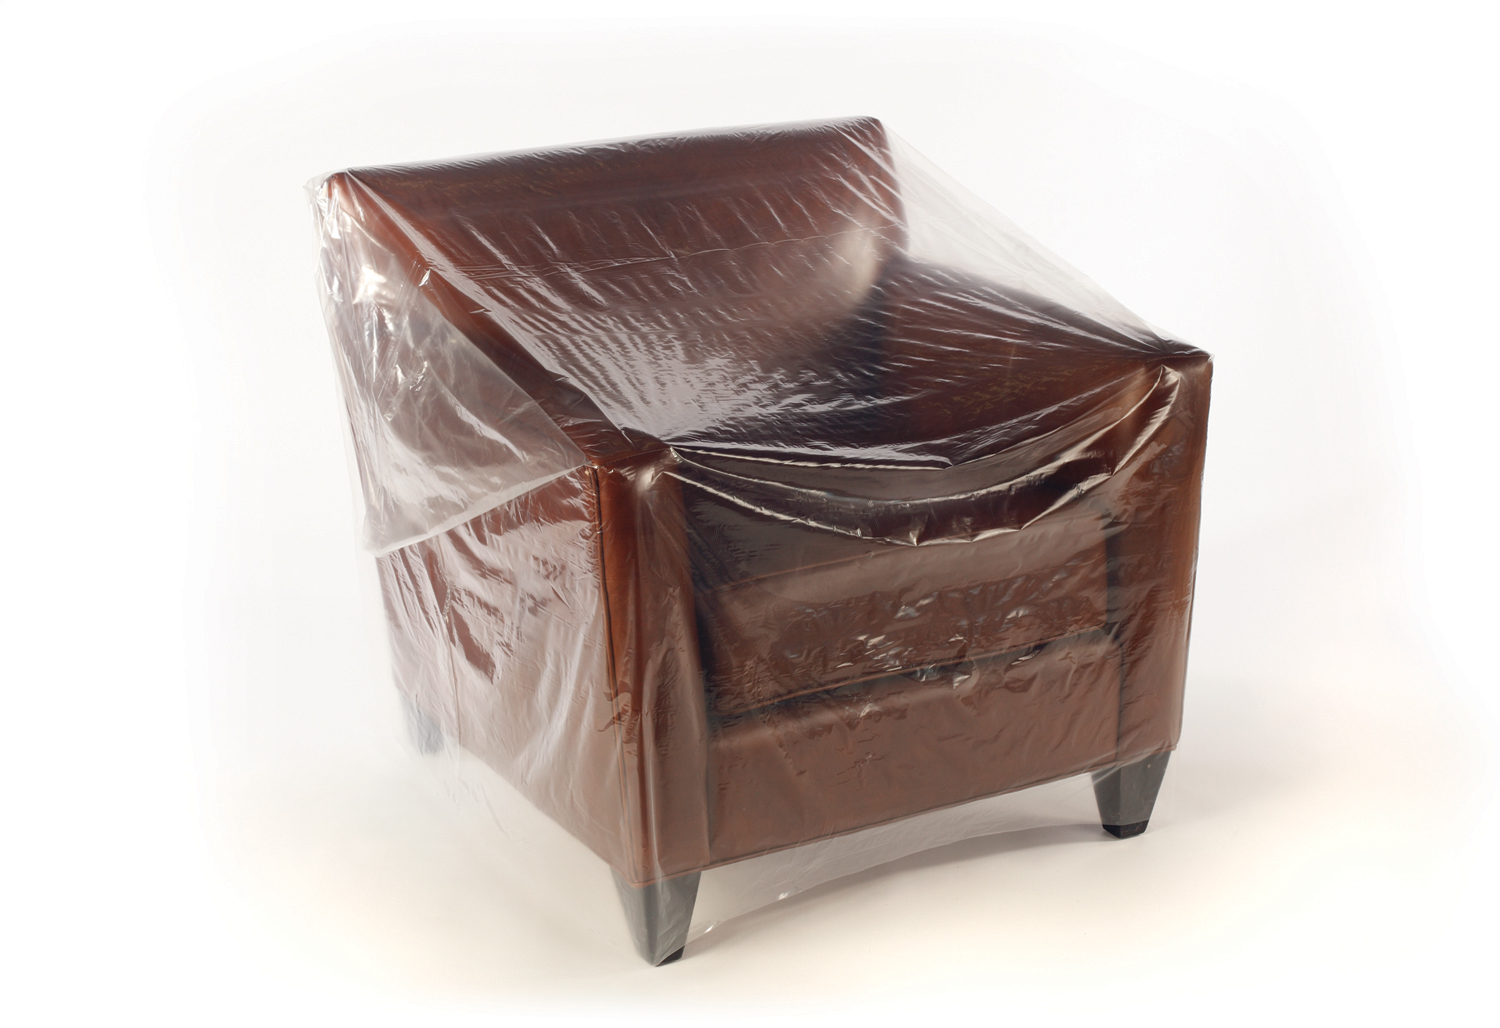 plastic chair covers sofa covers plastic cover couch cover  - furniture covers